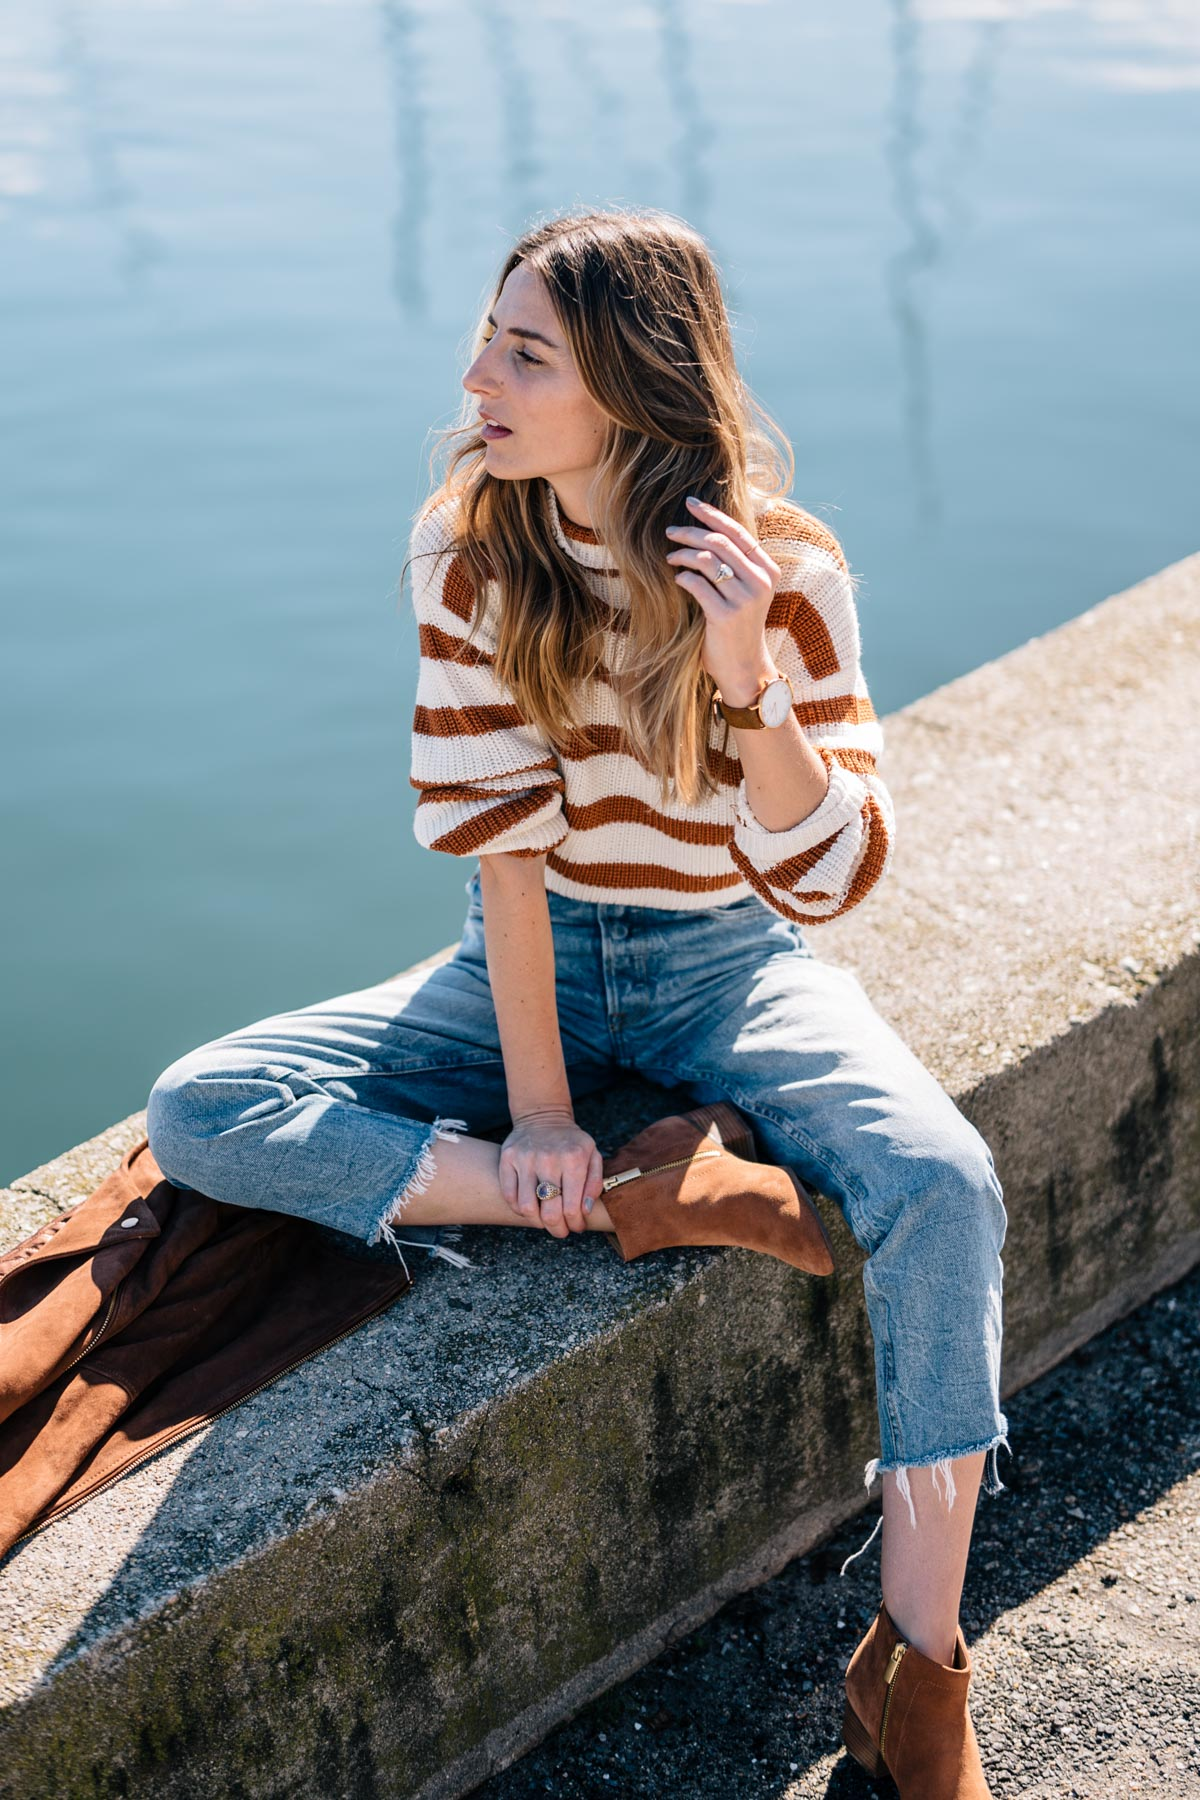 Jess Ann Kirby wears the Paper Crown Vancouver Sweater and GRLFRND Denim for the perfect fall outfit